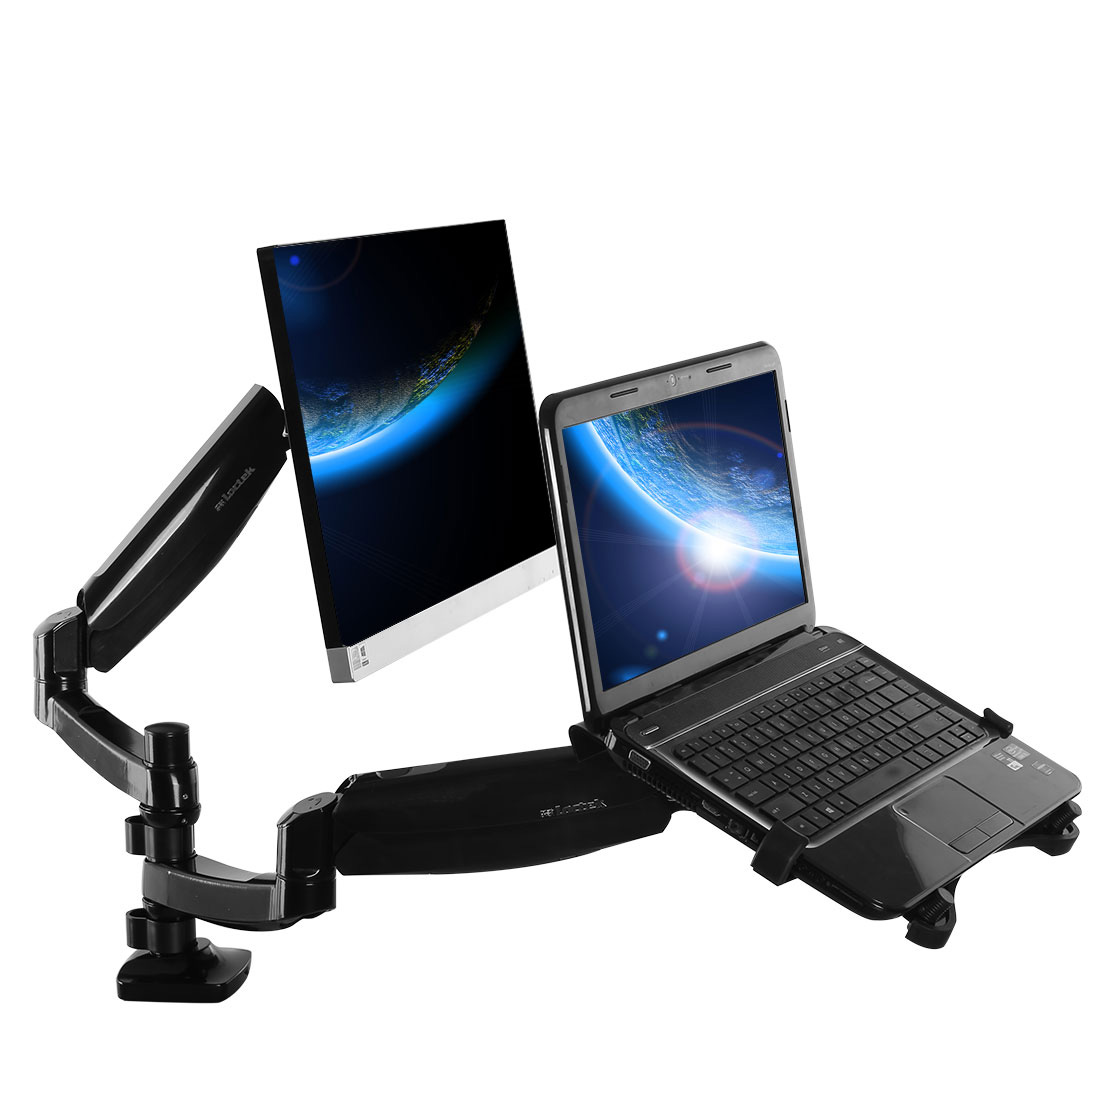 Loctek dual arm desk mount stand for monitor&laptop D5DL